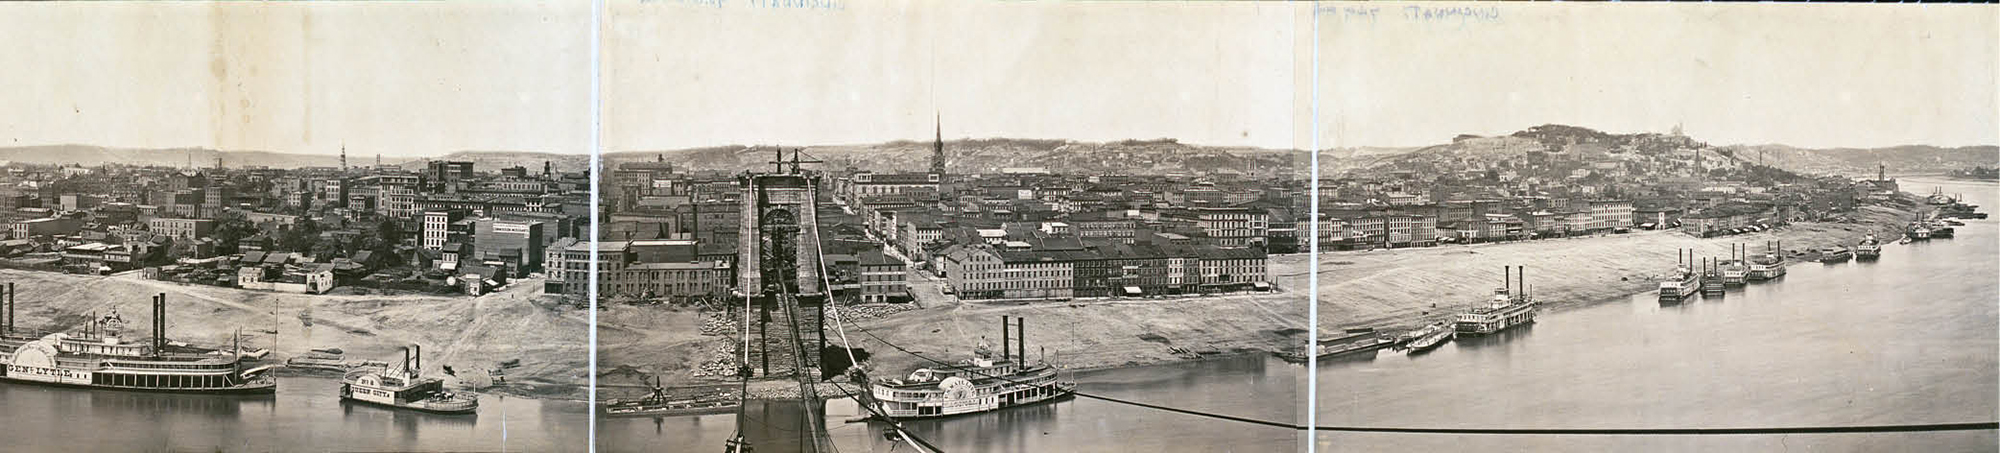 View from the top of the south tower of the Roebling Bridge while it was under construction during the Civil War.